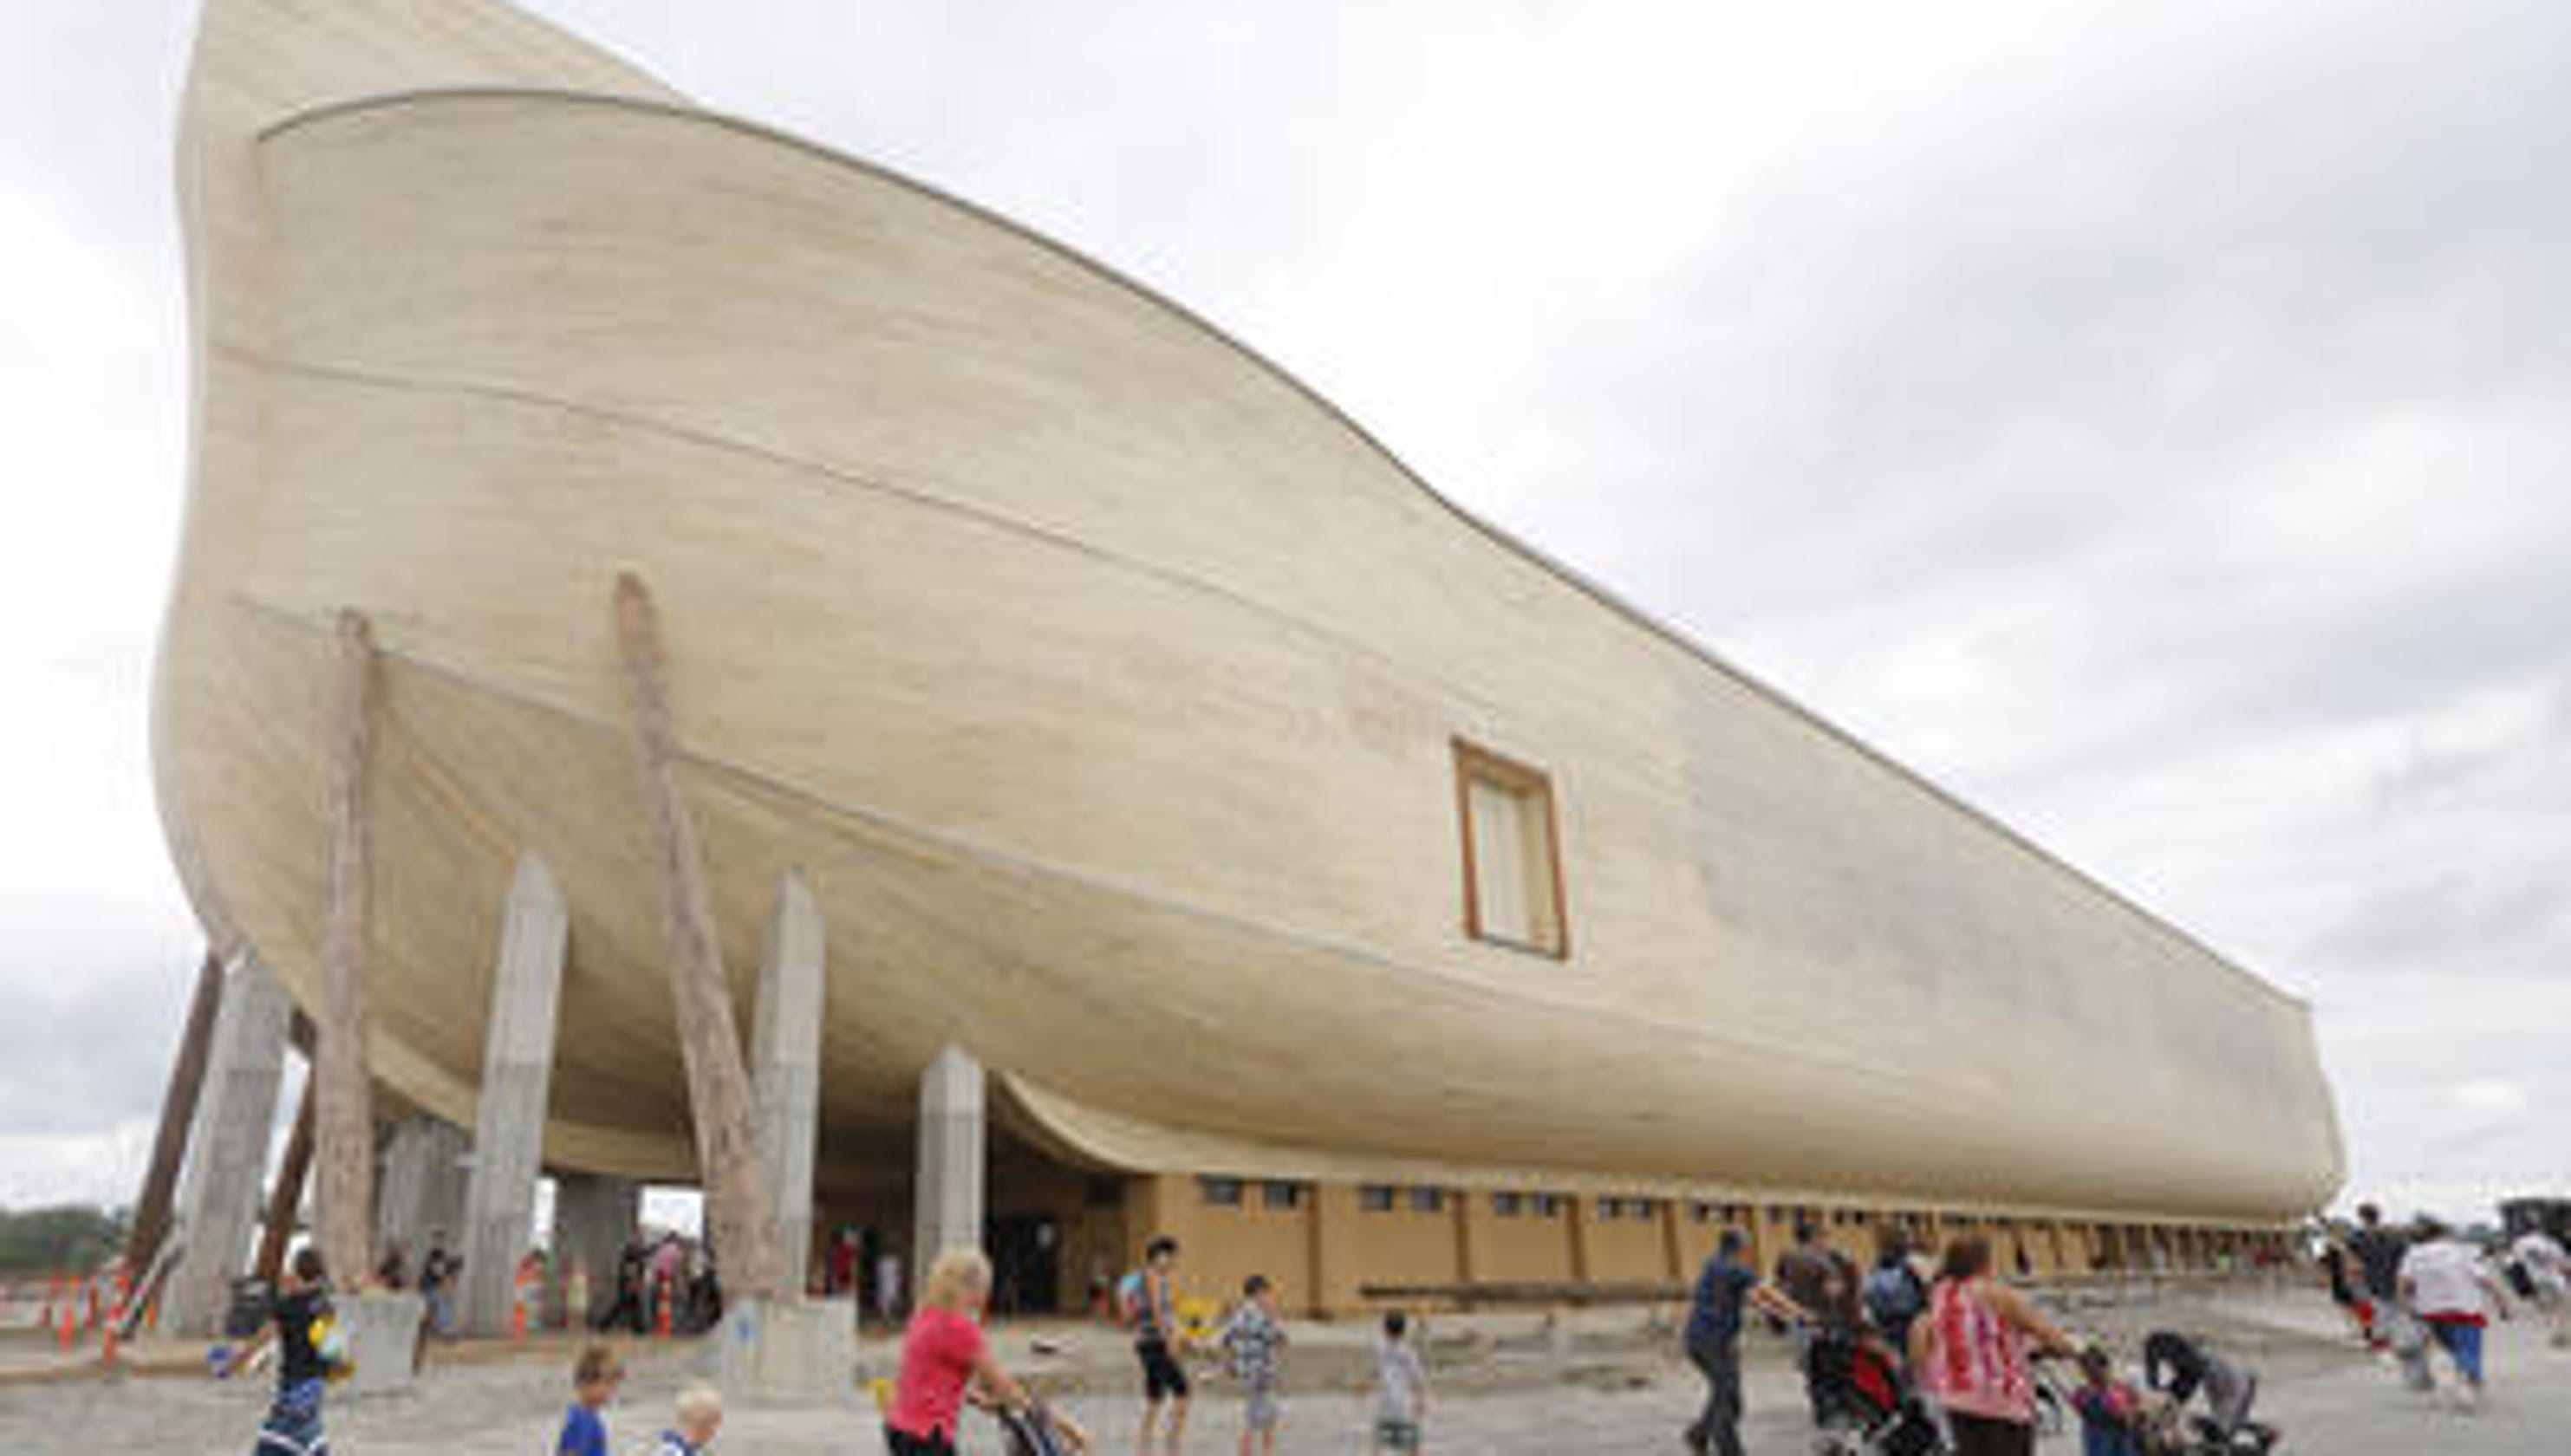 Ark Encounter in Kentucky: What to know about Noah's Ark replica